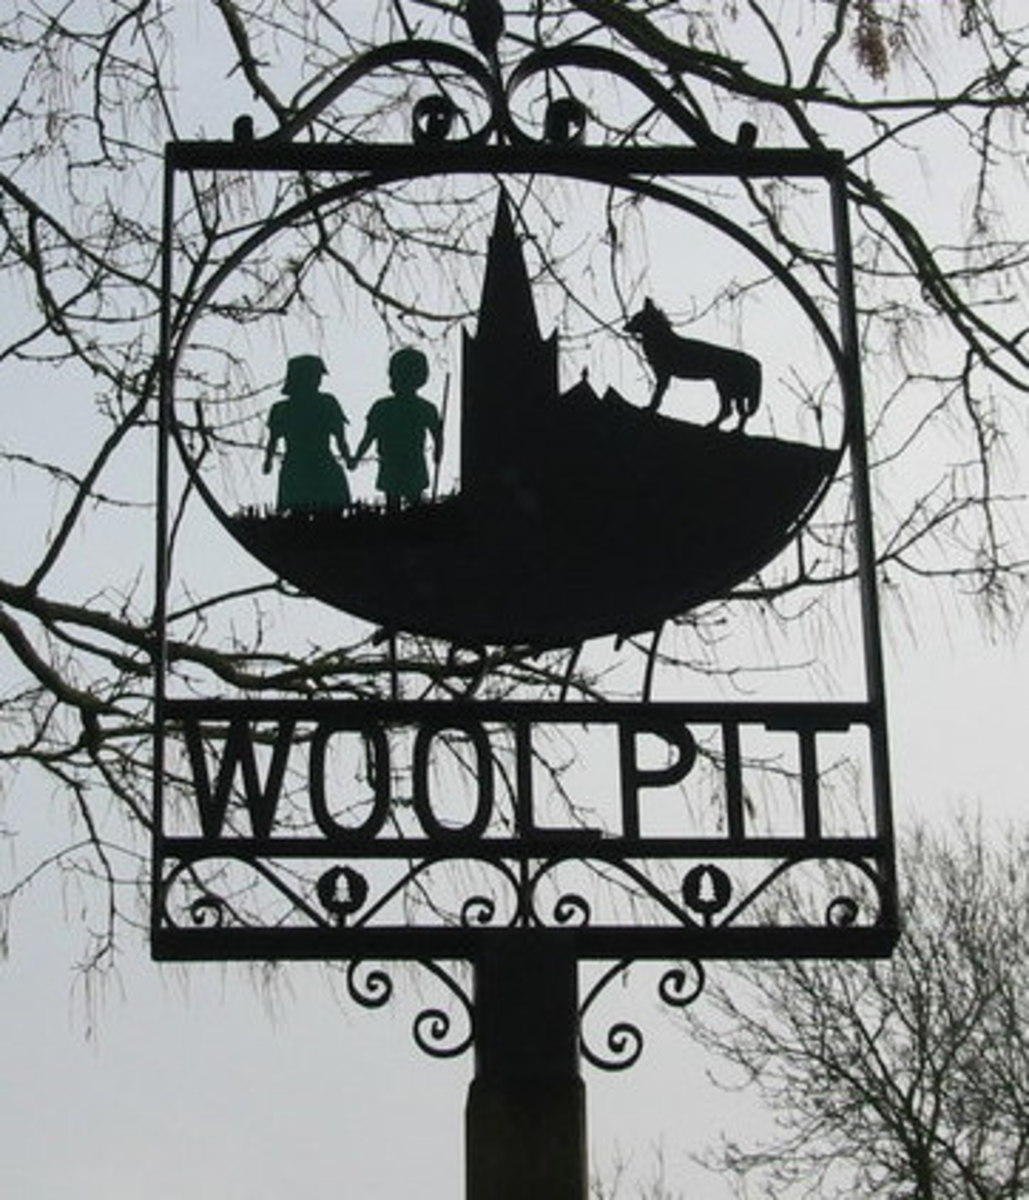 The village sign with the children depicted on it.